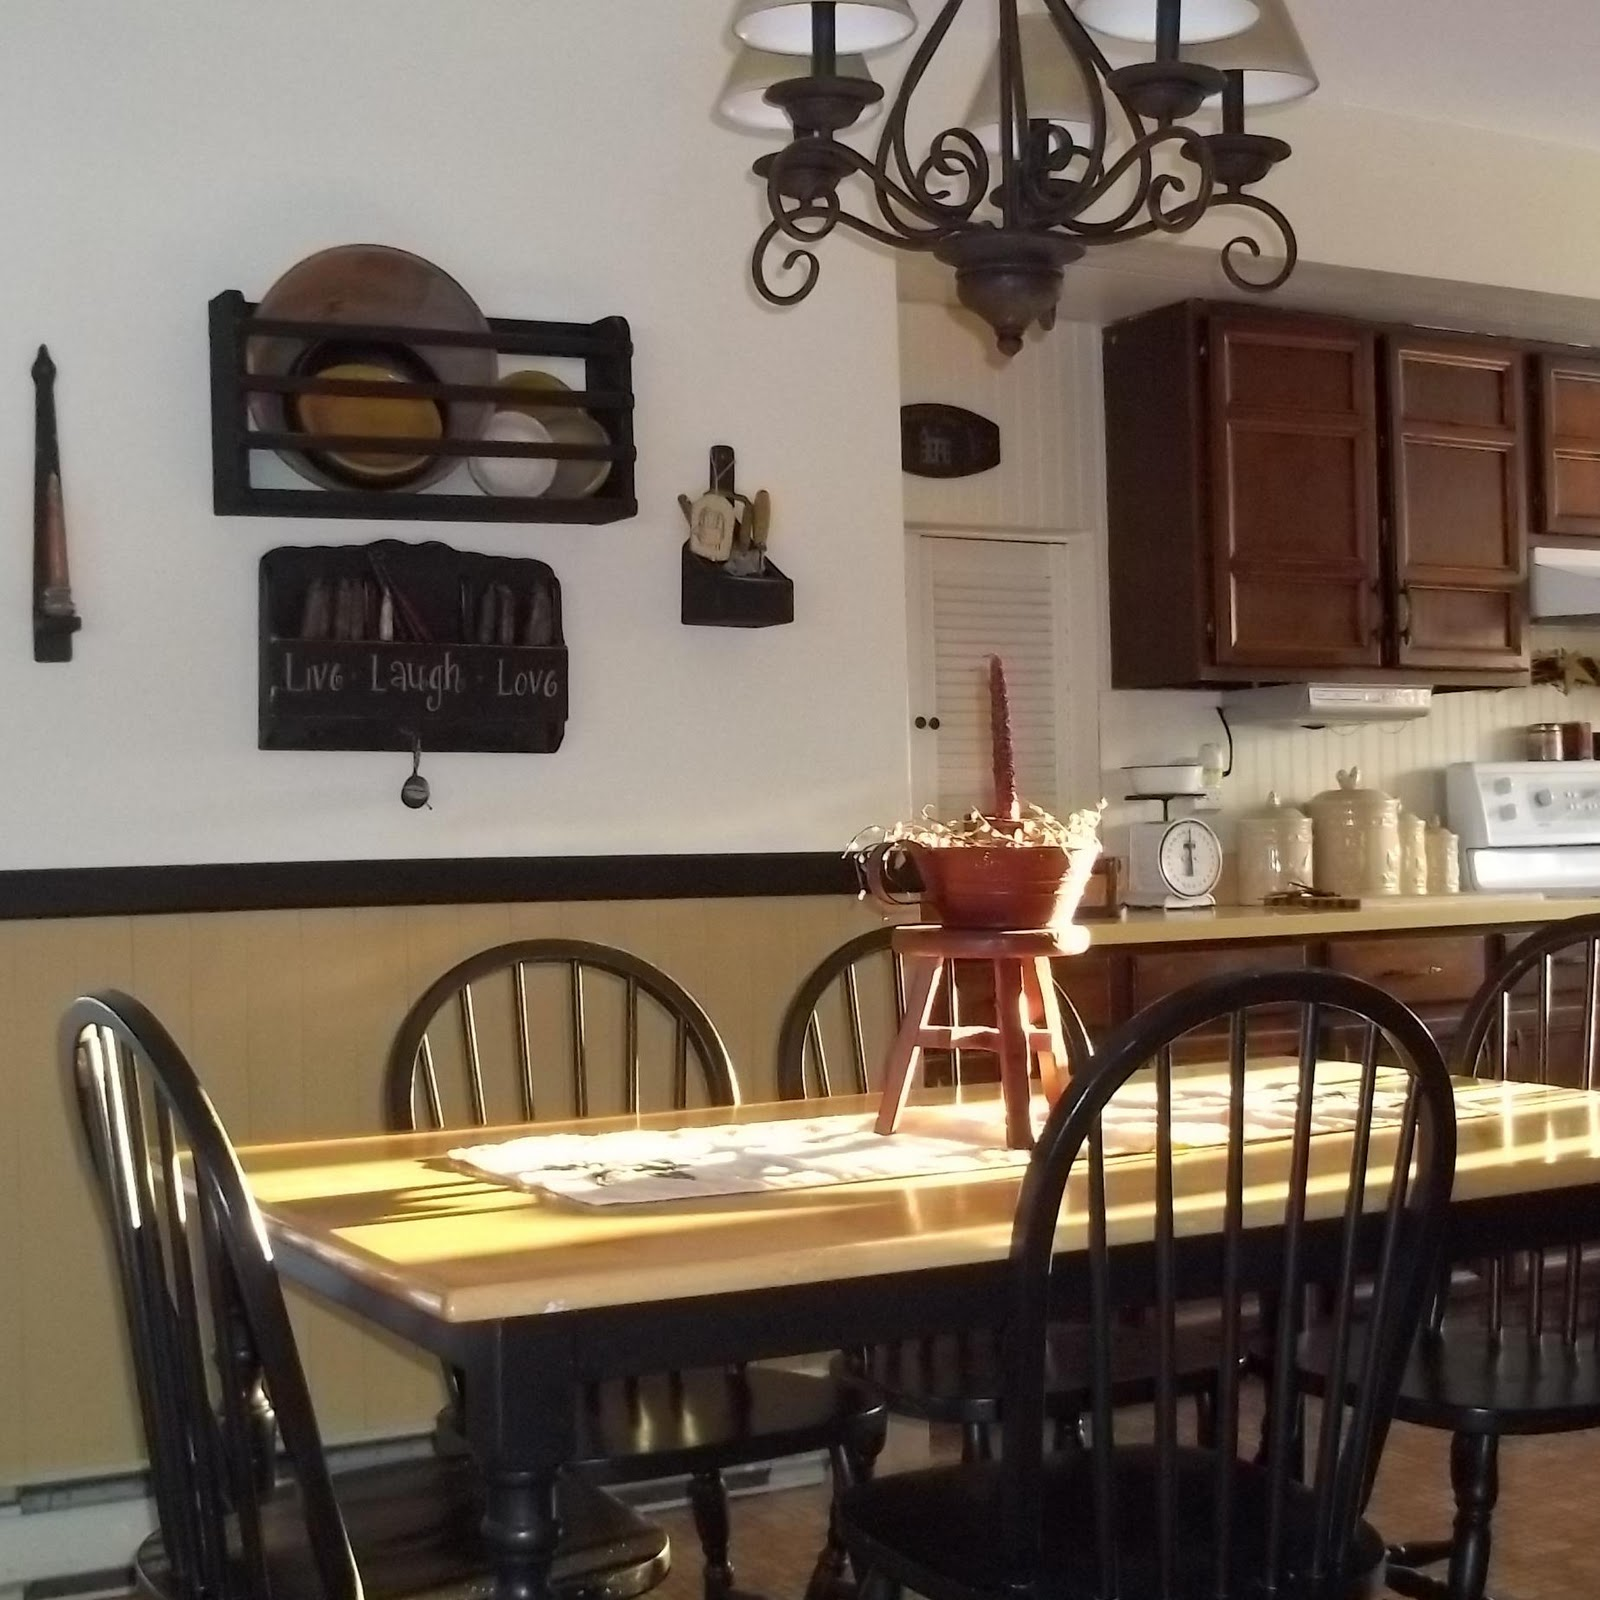 Thrifty Blogs On Home Decor: THE BLESSED HEARTH: Frugal Decorating With Black Paint